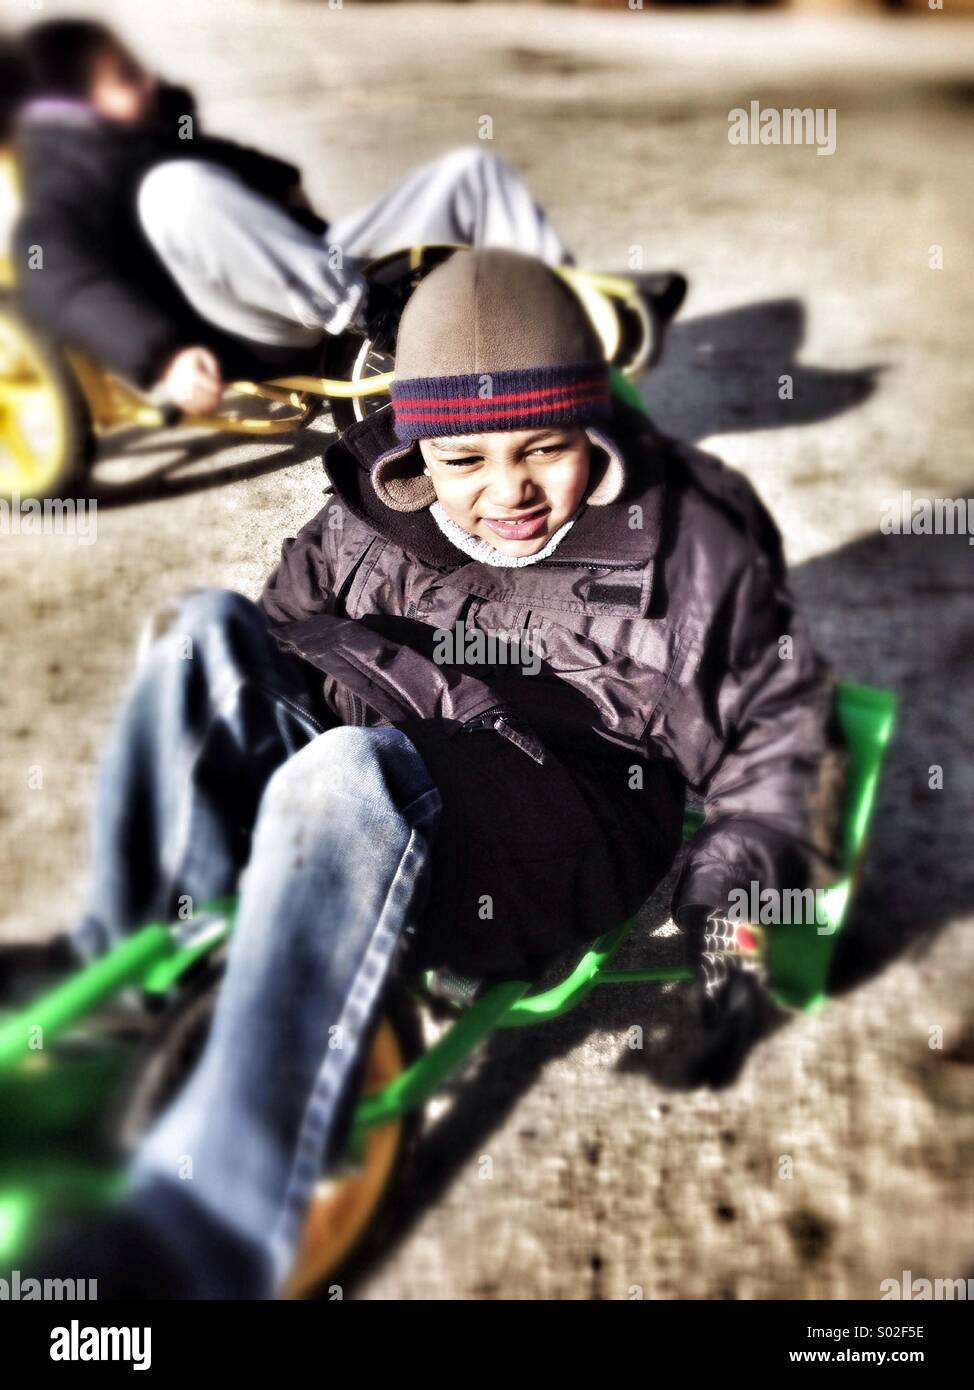 Mixed race boy smiling and playing outdoors. - Stock Image